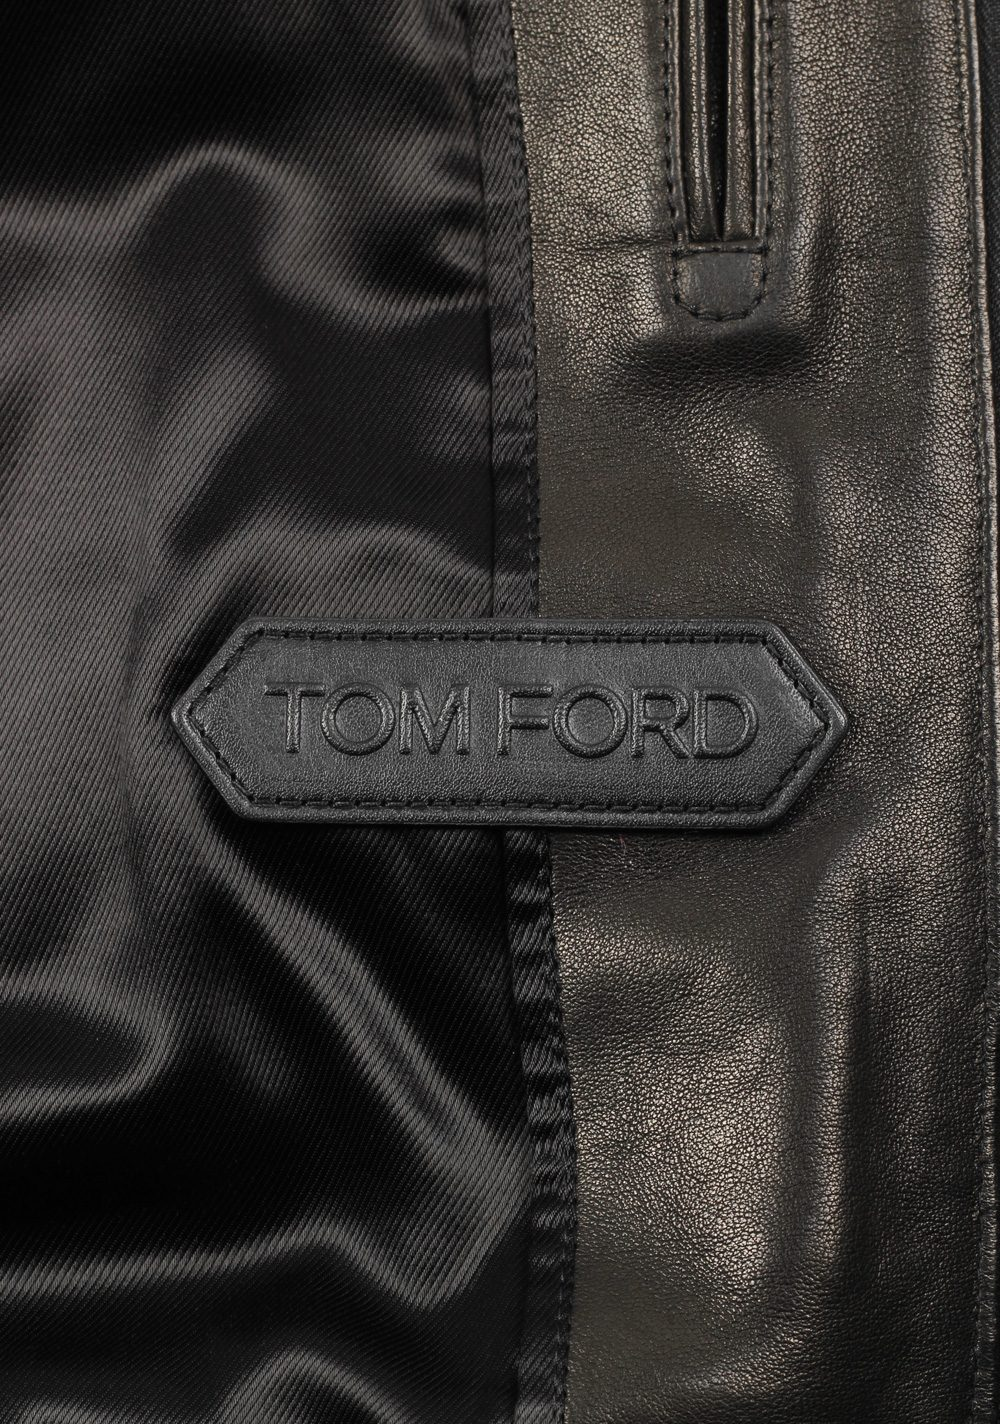 TOM FORD Leather Biker Jacket Coat Size 54 / 44R U.S. Outerwear | Costume Limité